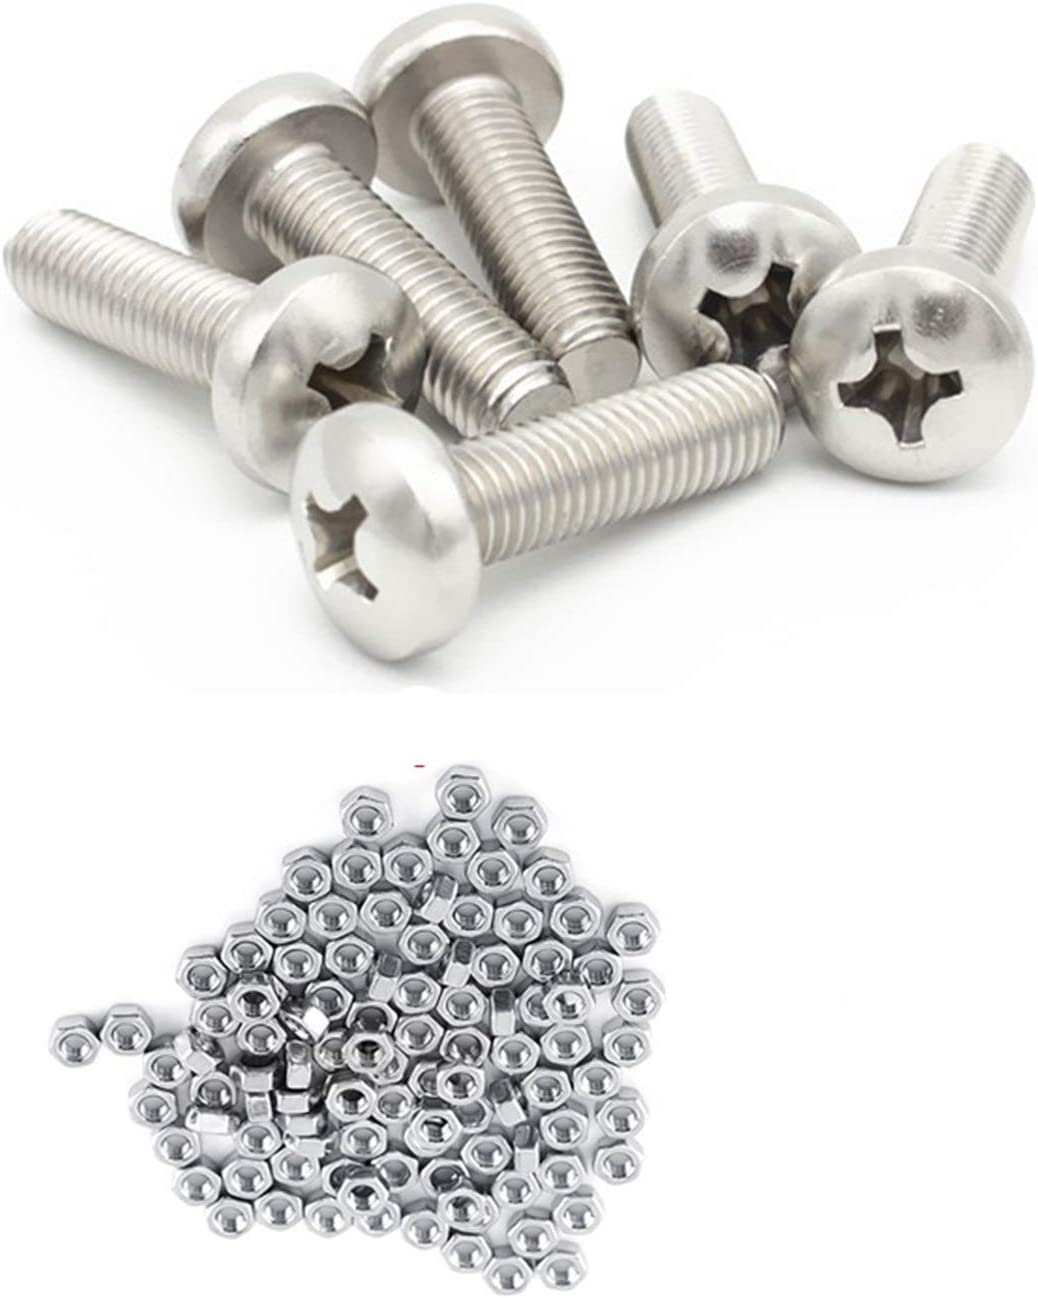 Screw screw 250pc set A2 Max 54% OFF Stainless Flat Cap Button Head quality assurance Steel M3